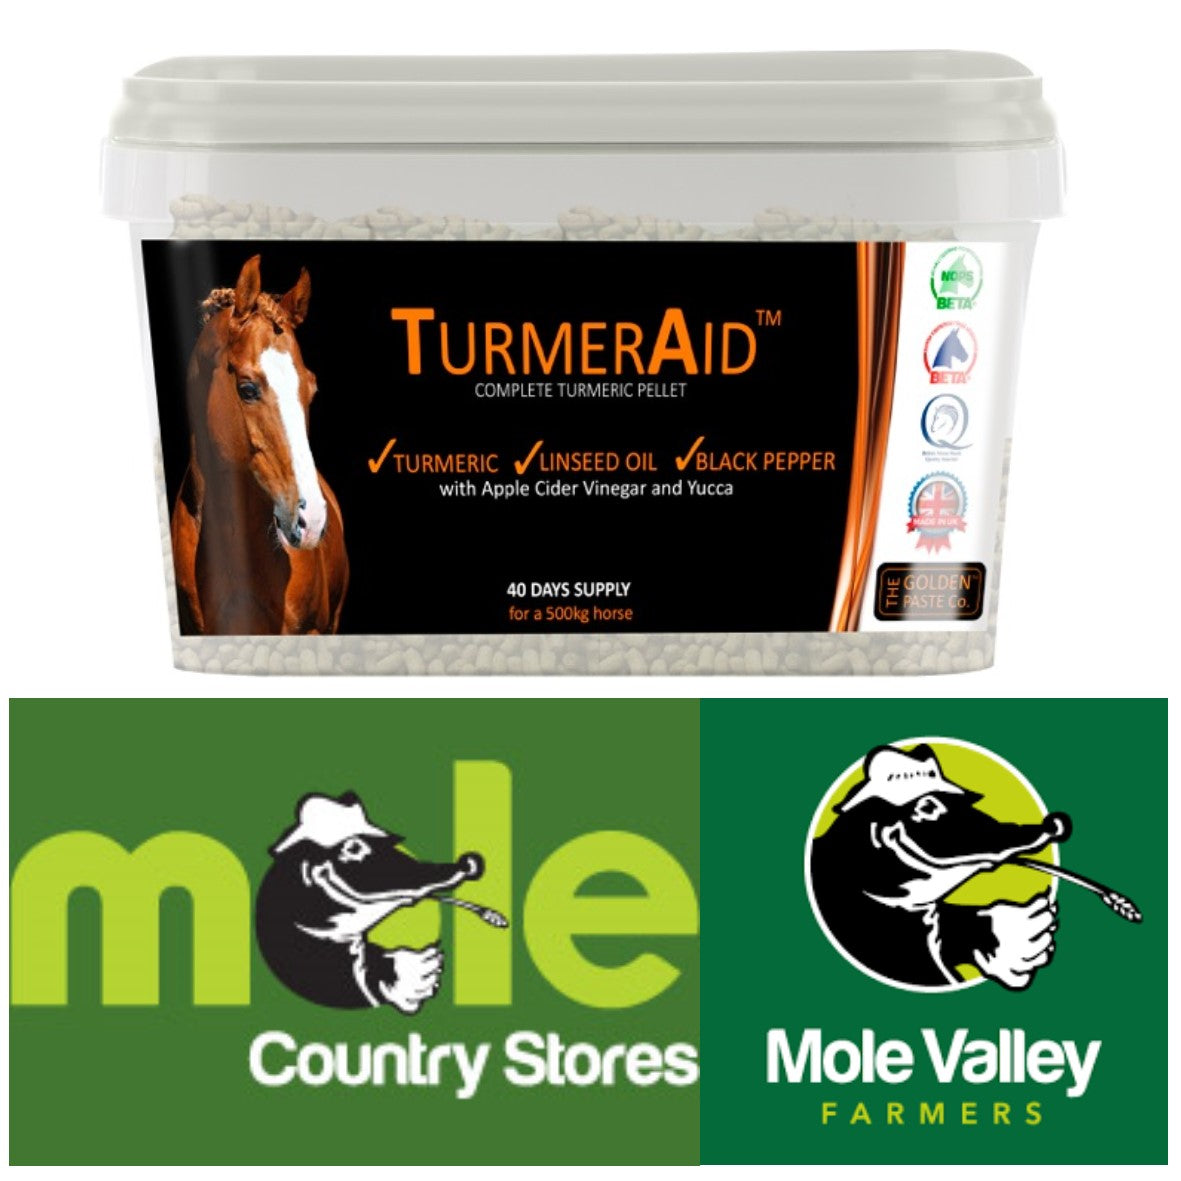 TURMERAID™ at Mole Valley and Country